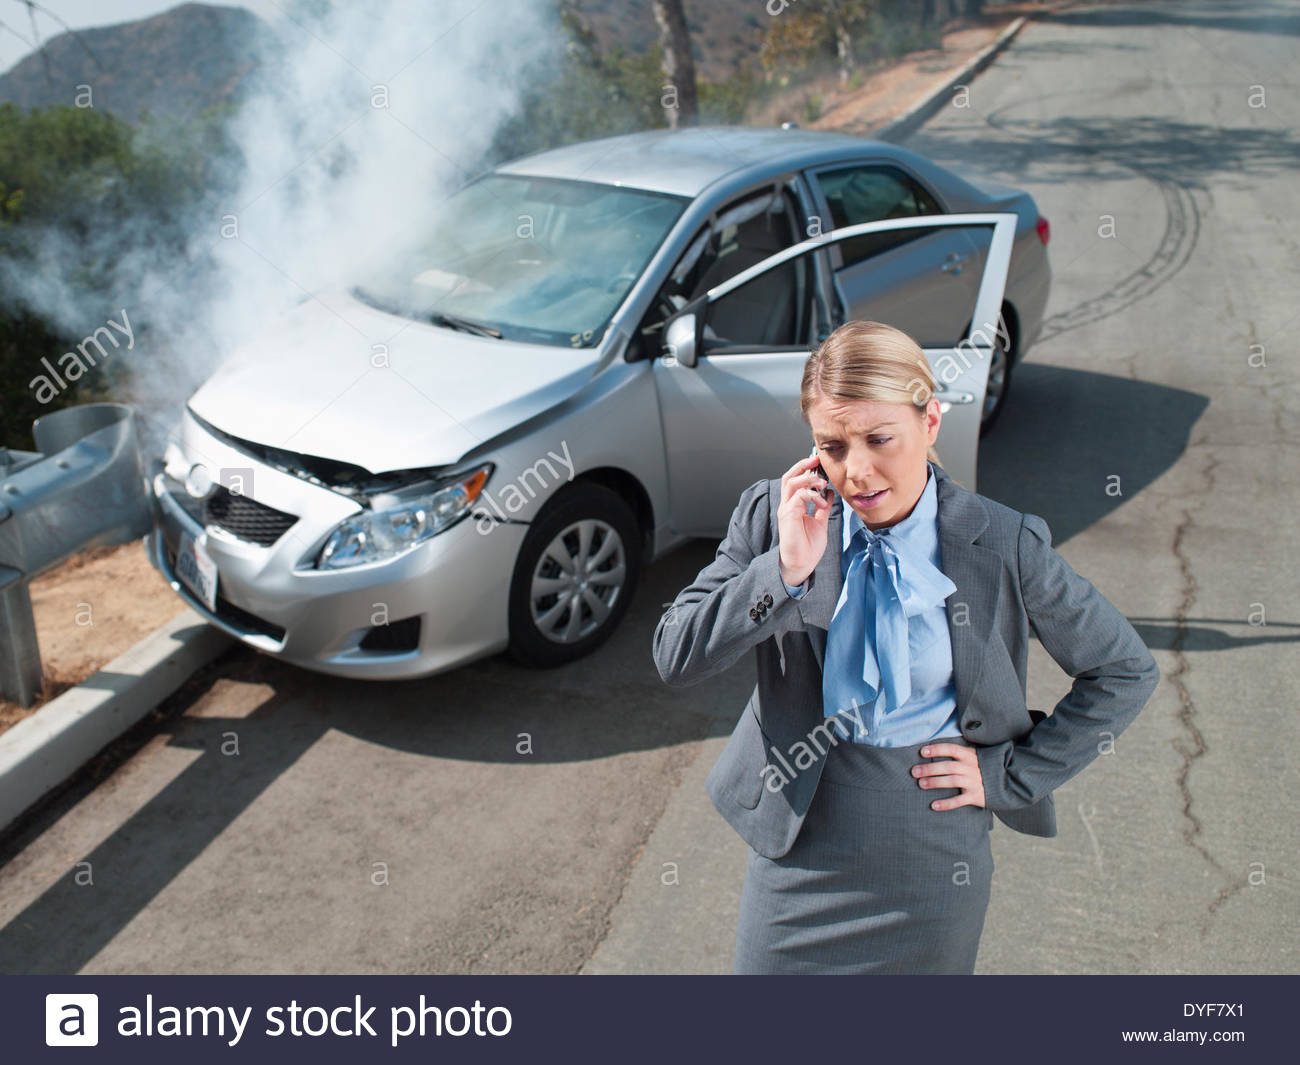 Businesswoman using cell phone near car wrecked on guardrail - Stock Image